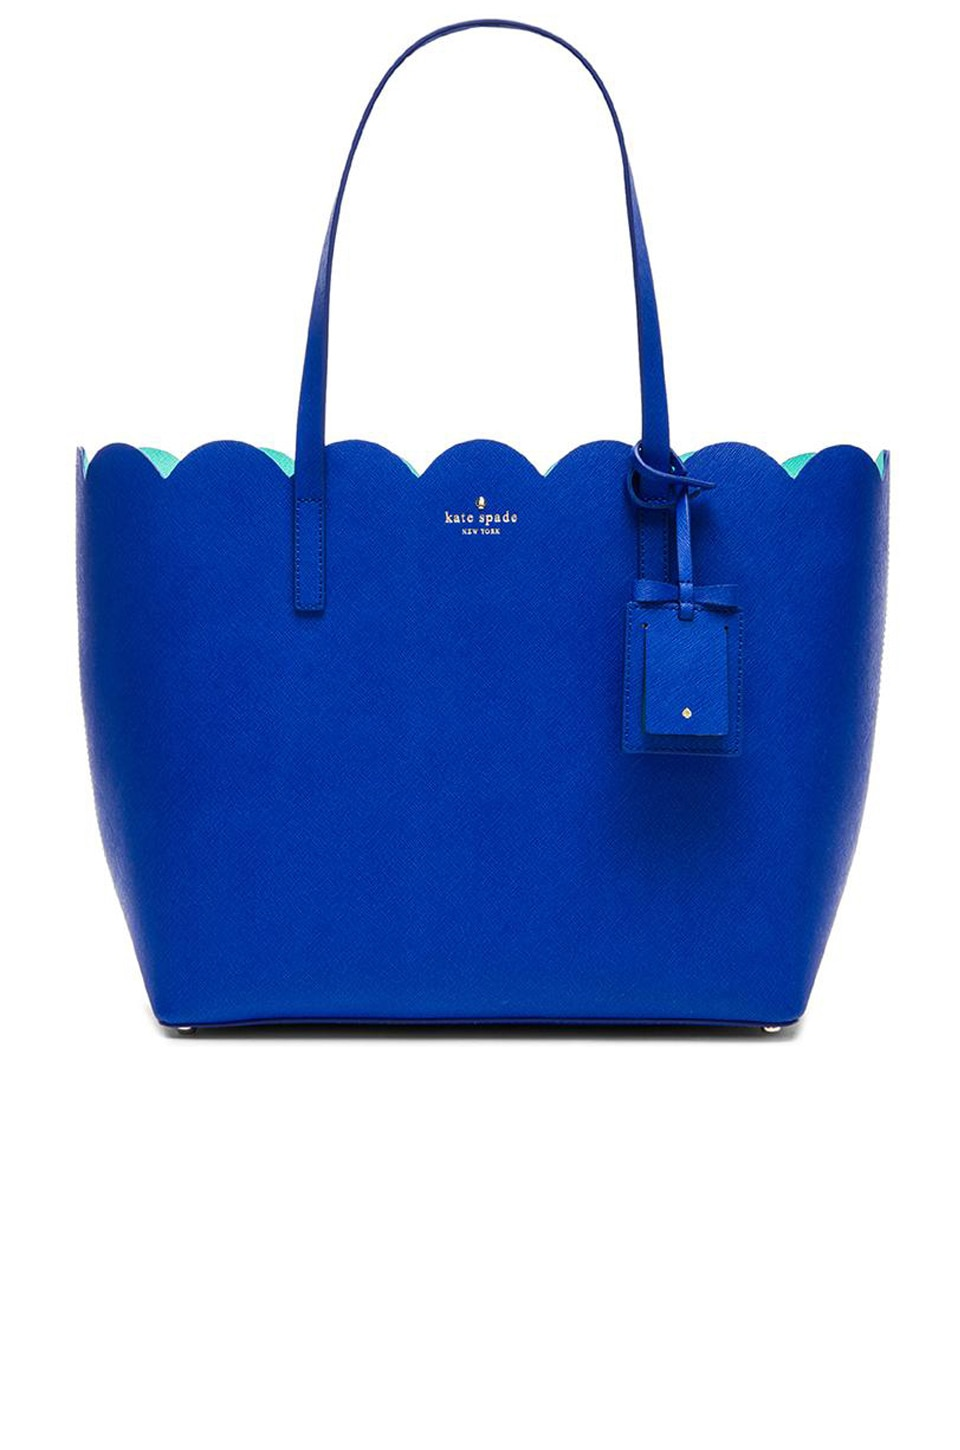 kate spade new york Carrigan Tote in Island Deep & Fresh Air